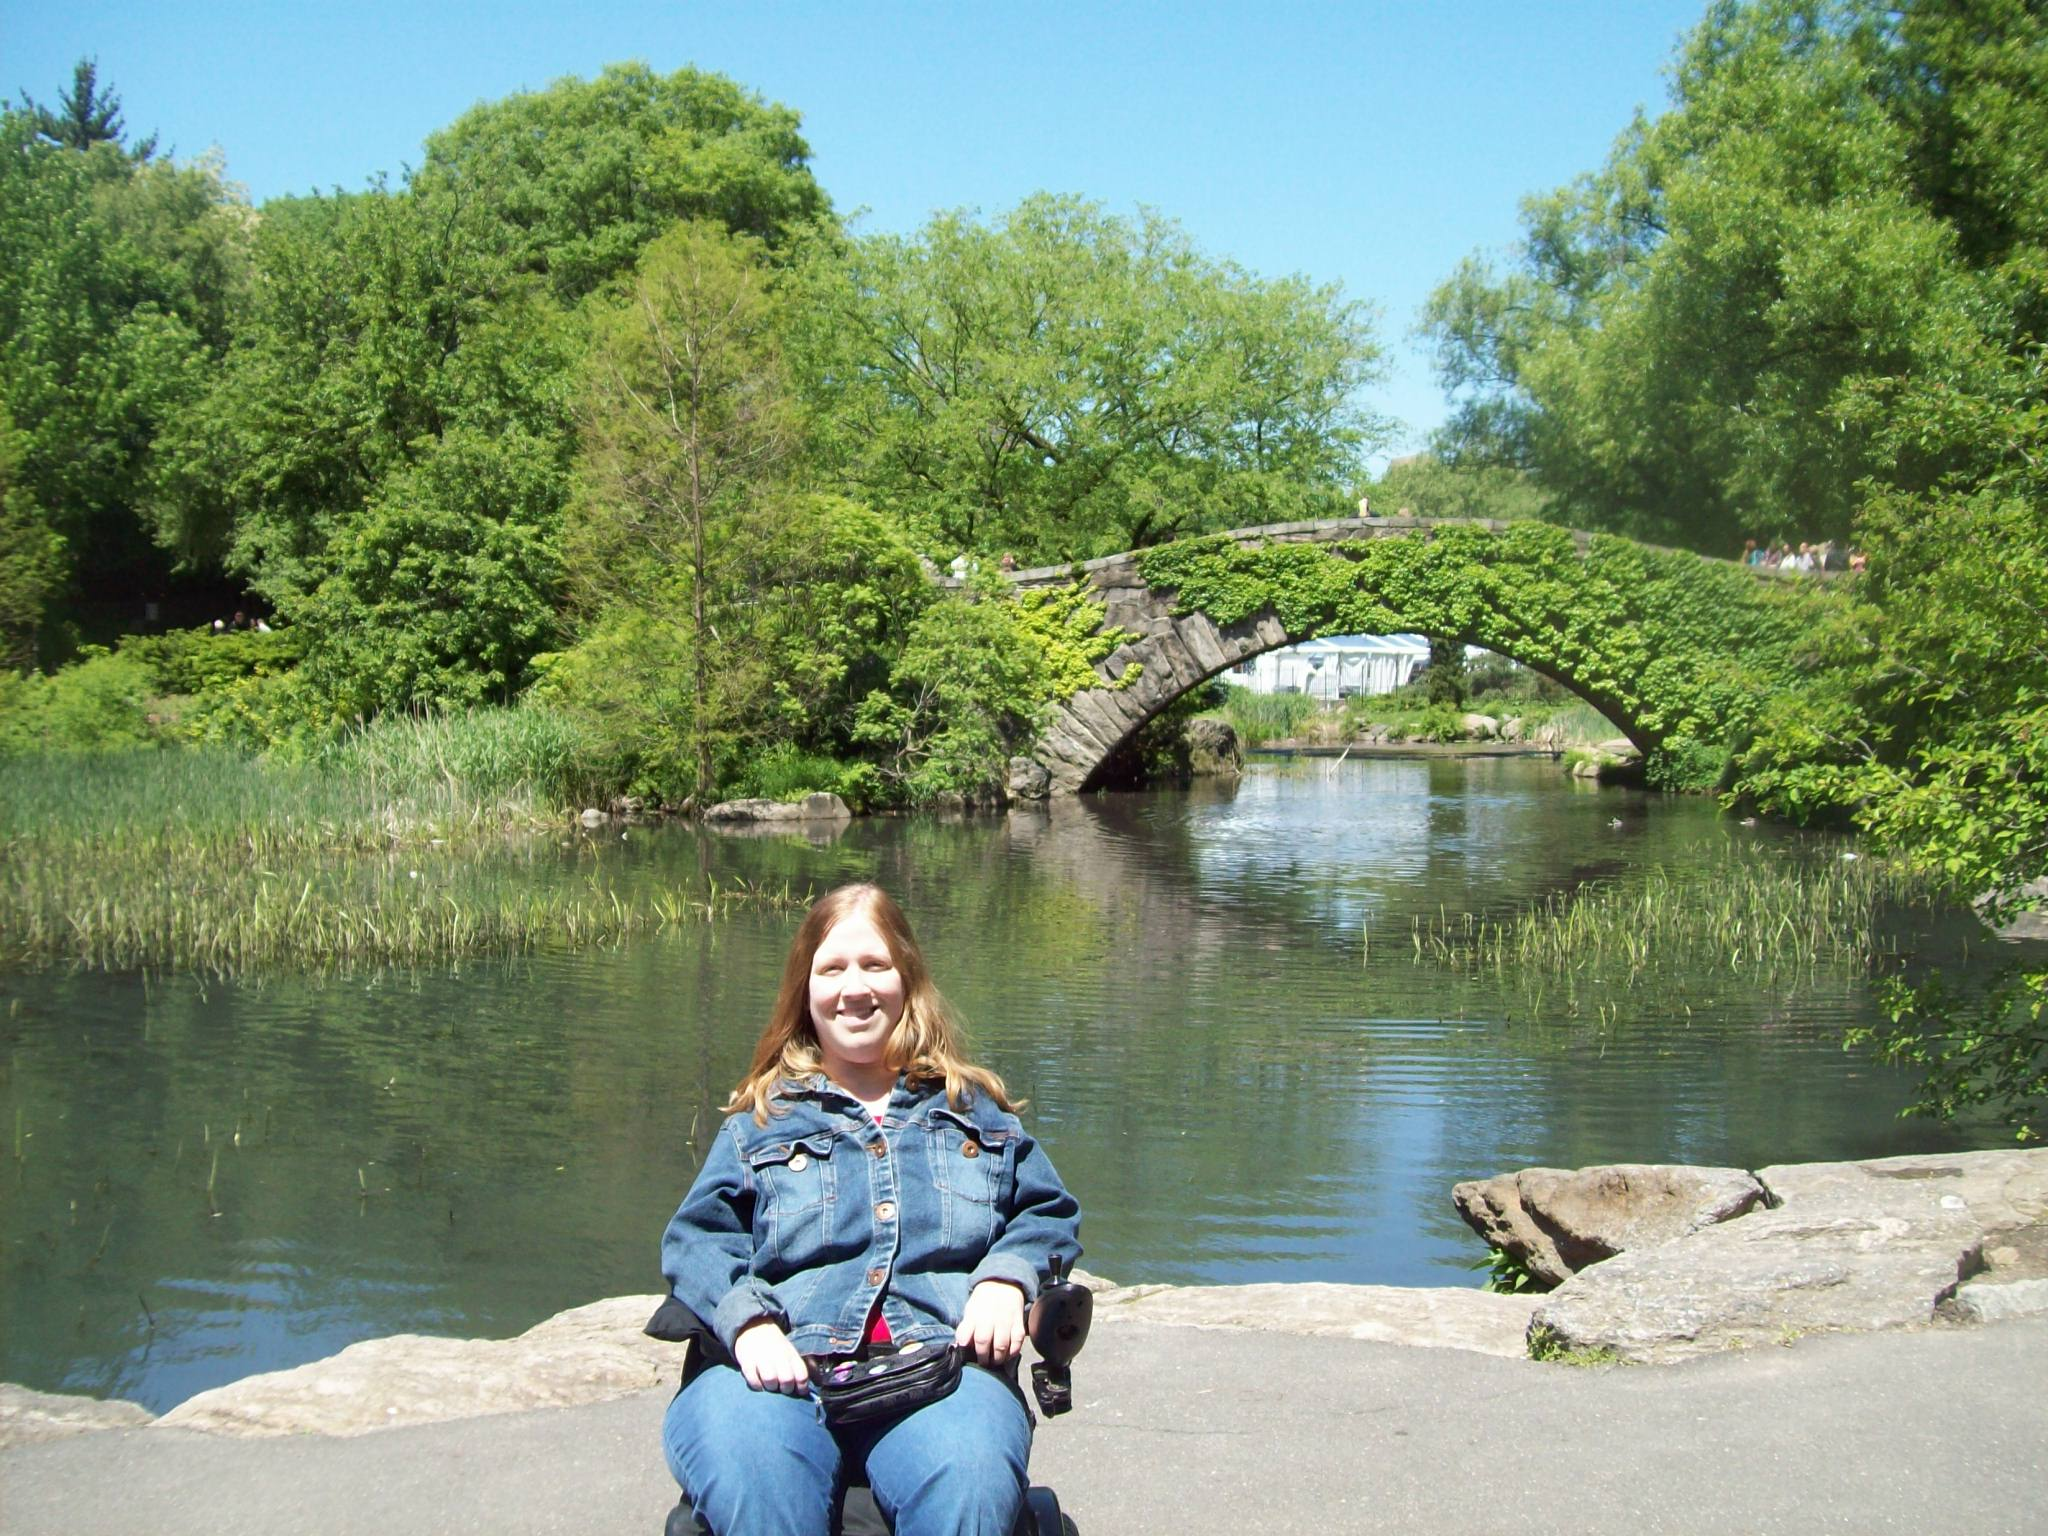 Karin in Central Park, 2010.